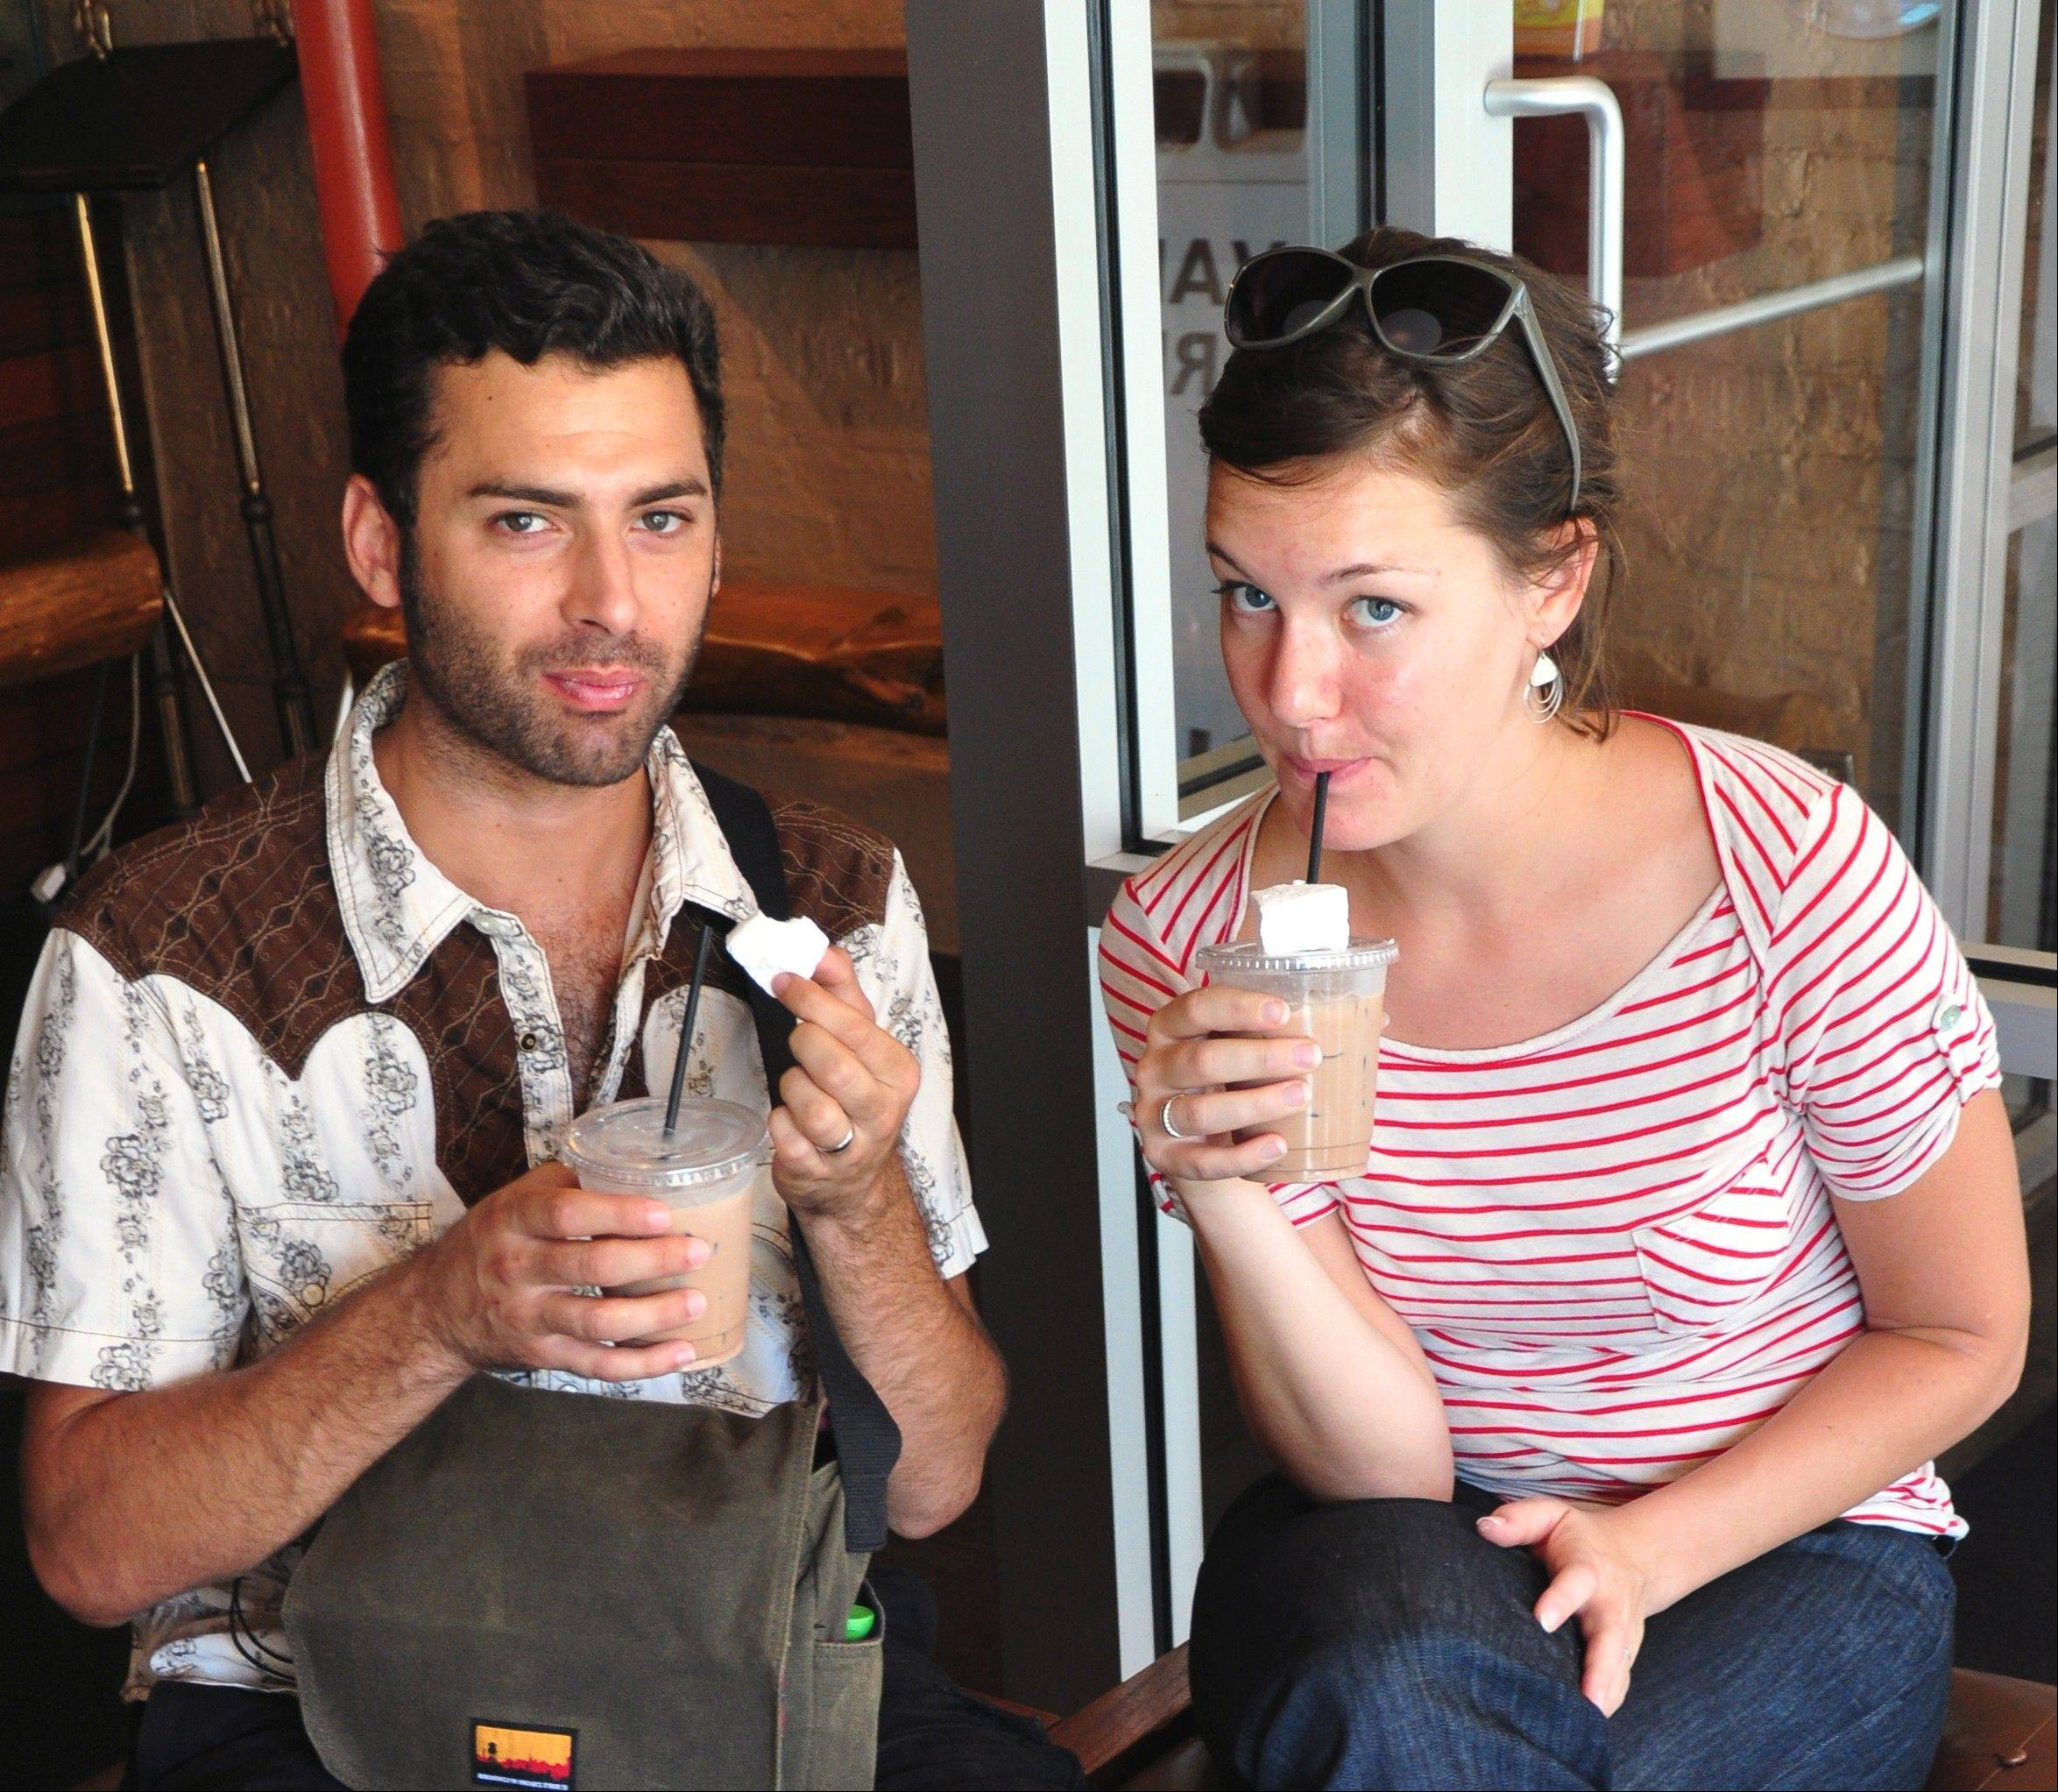 William and Mary Martin taste an iced chocolate with homemade marshmallow at HotChocolate restaurant and dessert bar.